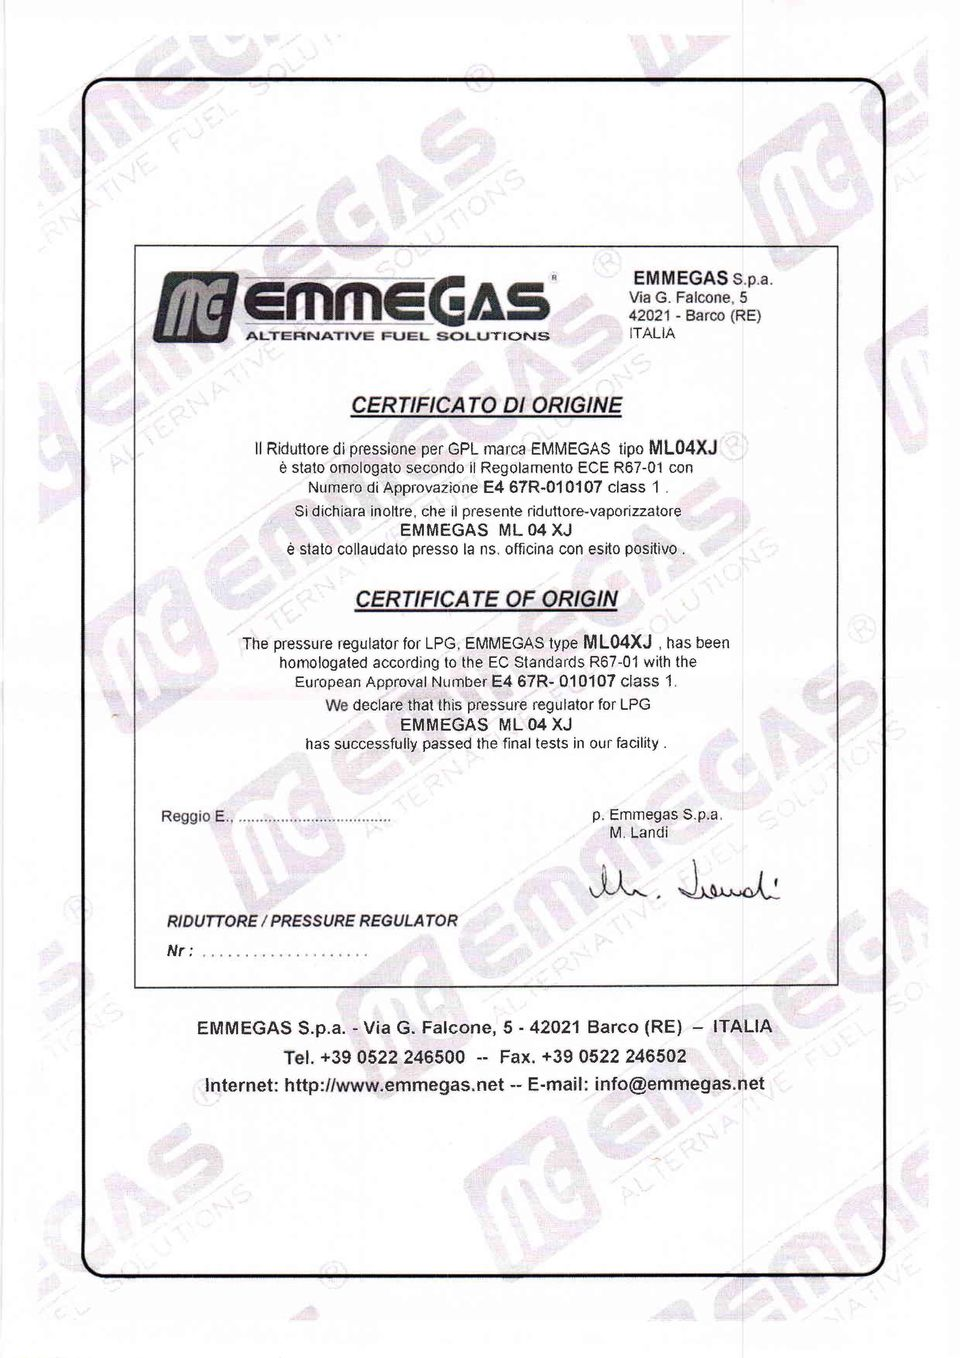 "The pressure regutalor for LPG, EMMEGAS type MLOAXJ, hss been homologated according to the EC Sfanderds R67-01 with the European ApprovalNurnben 4 67R- 010107 e[as$ 1"" d clare thct this pre$sufìb"